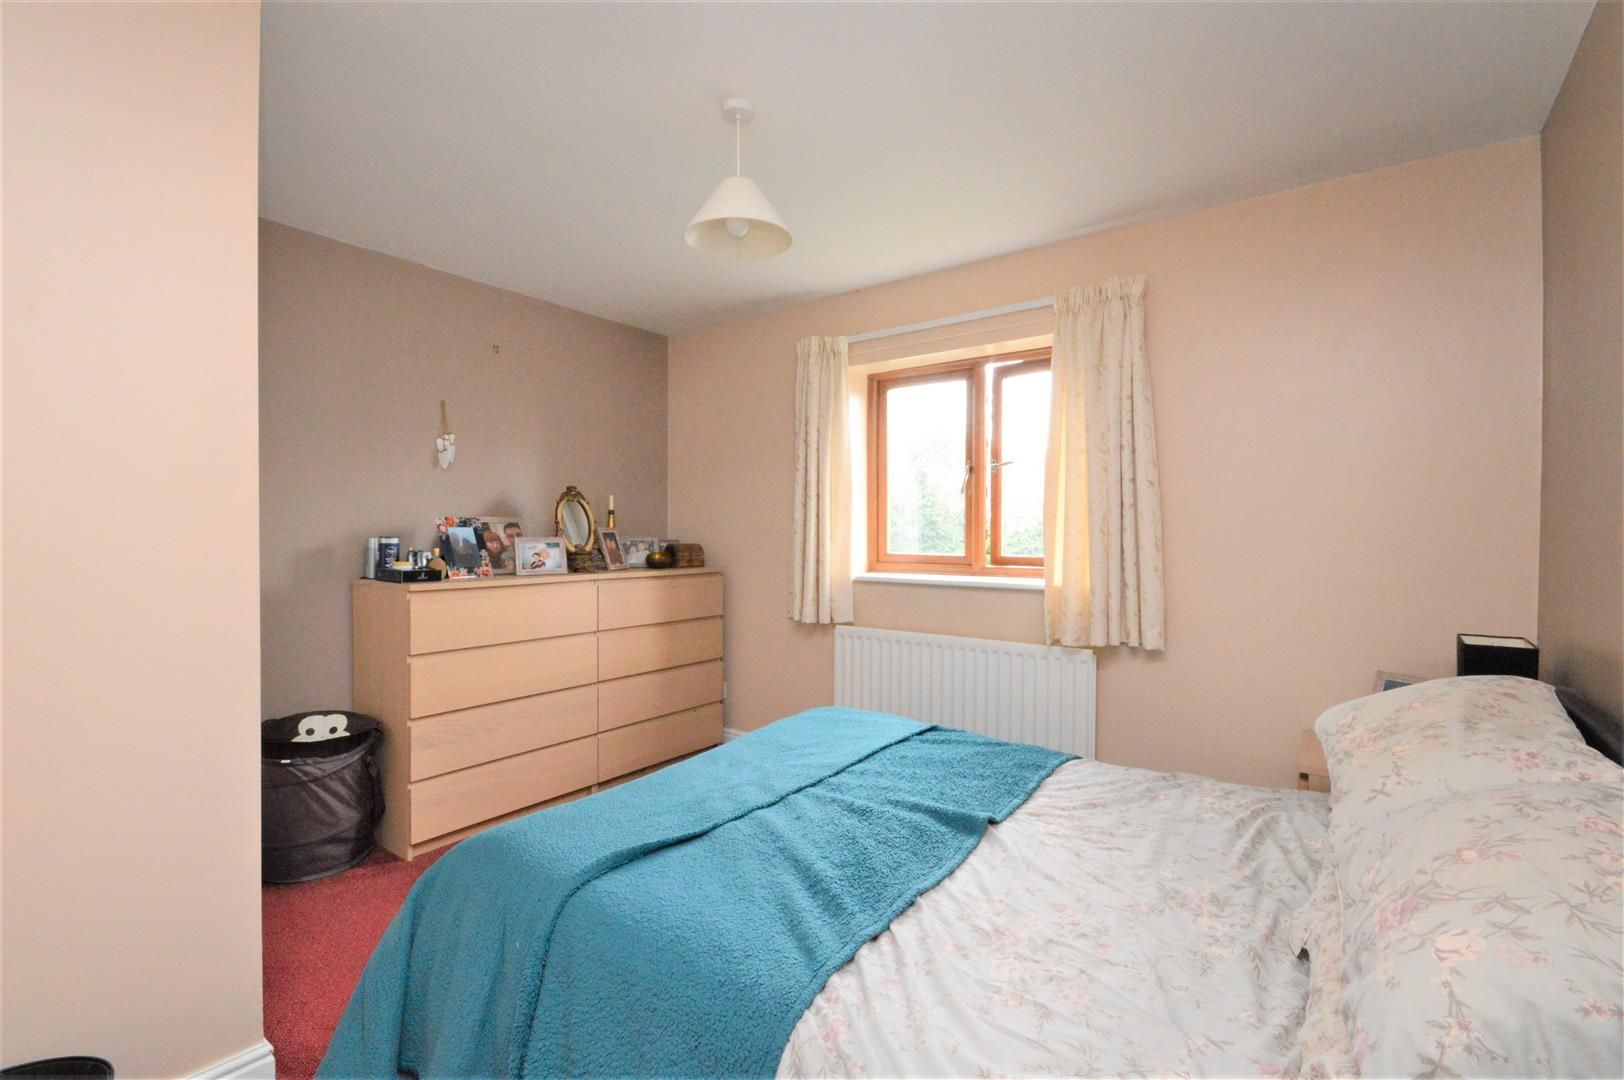 2 bed end of terrace for sale in Lower Bullingham  - Property Image 6